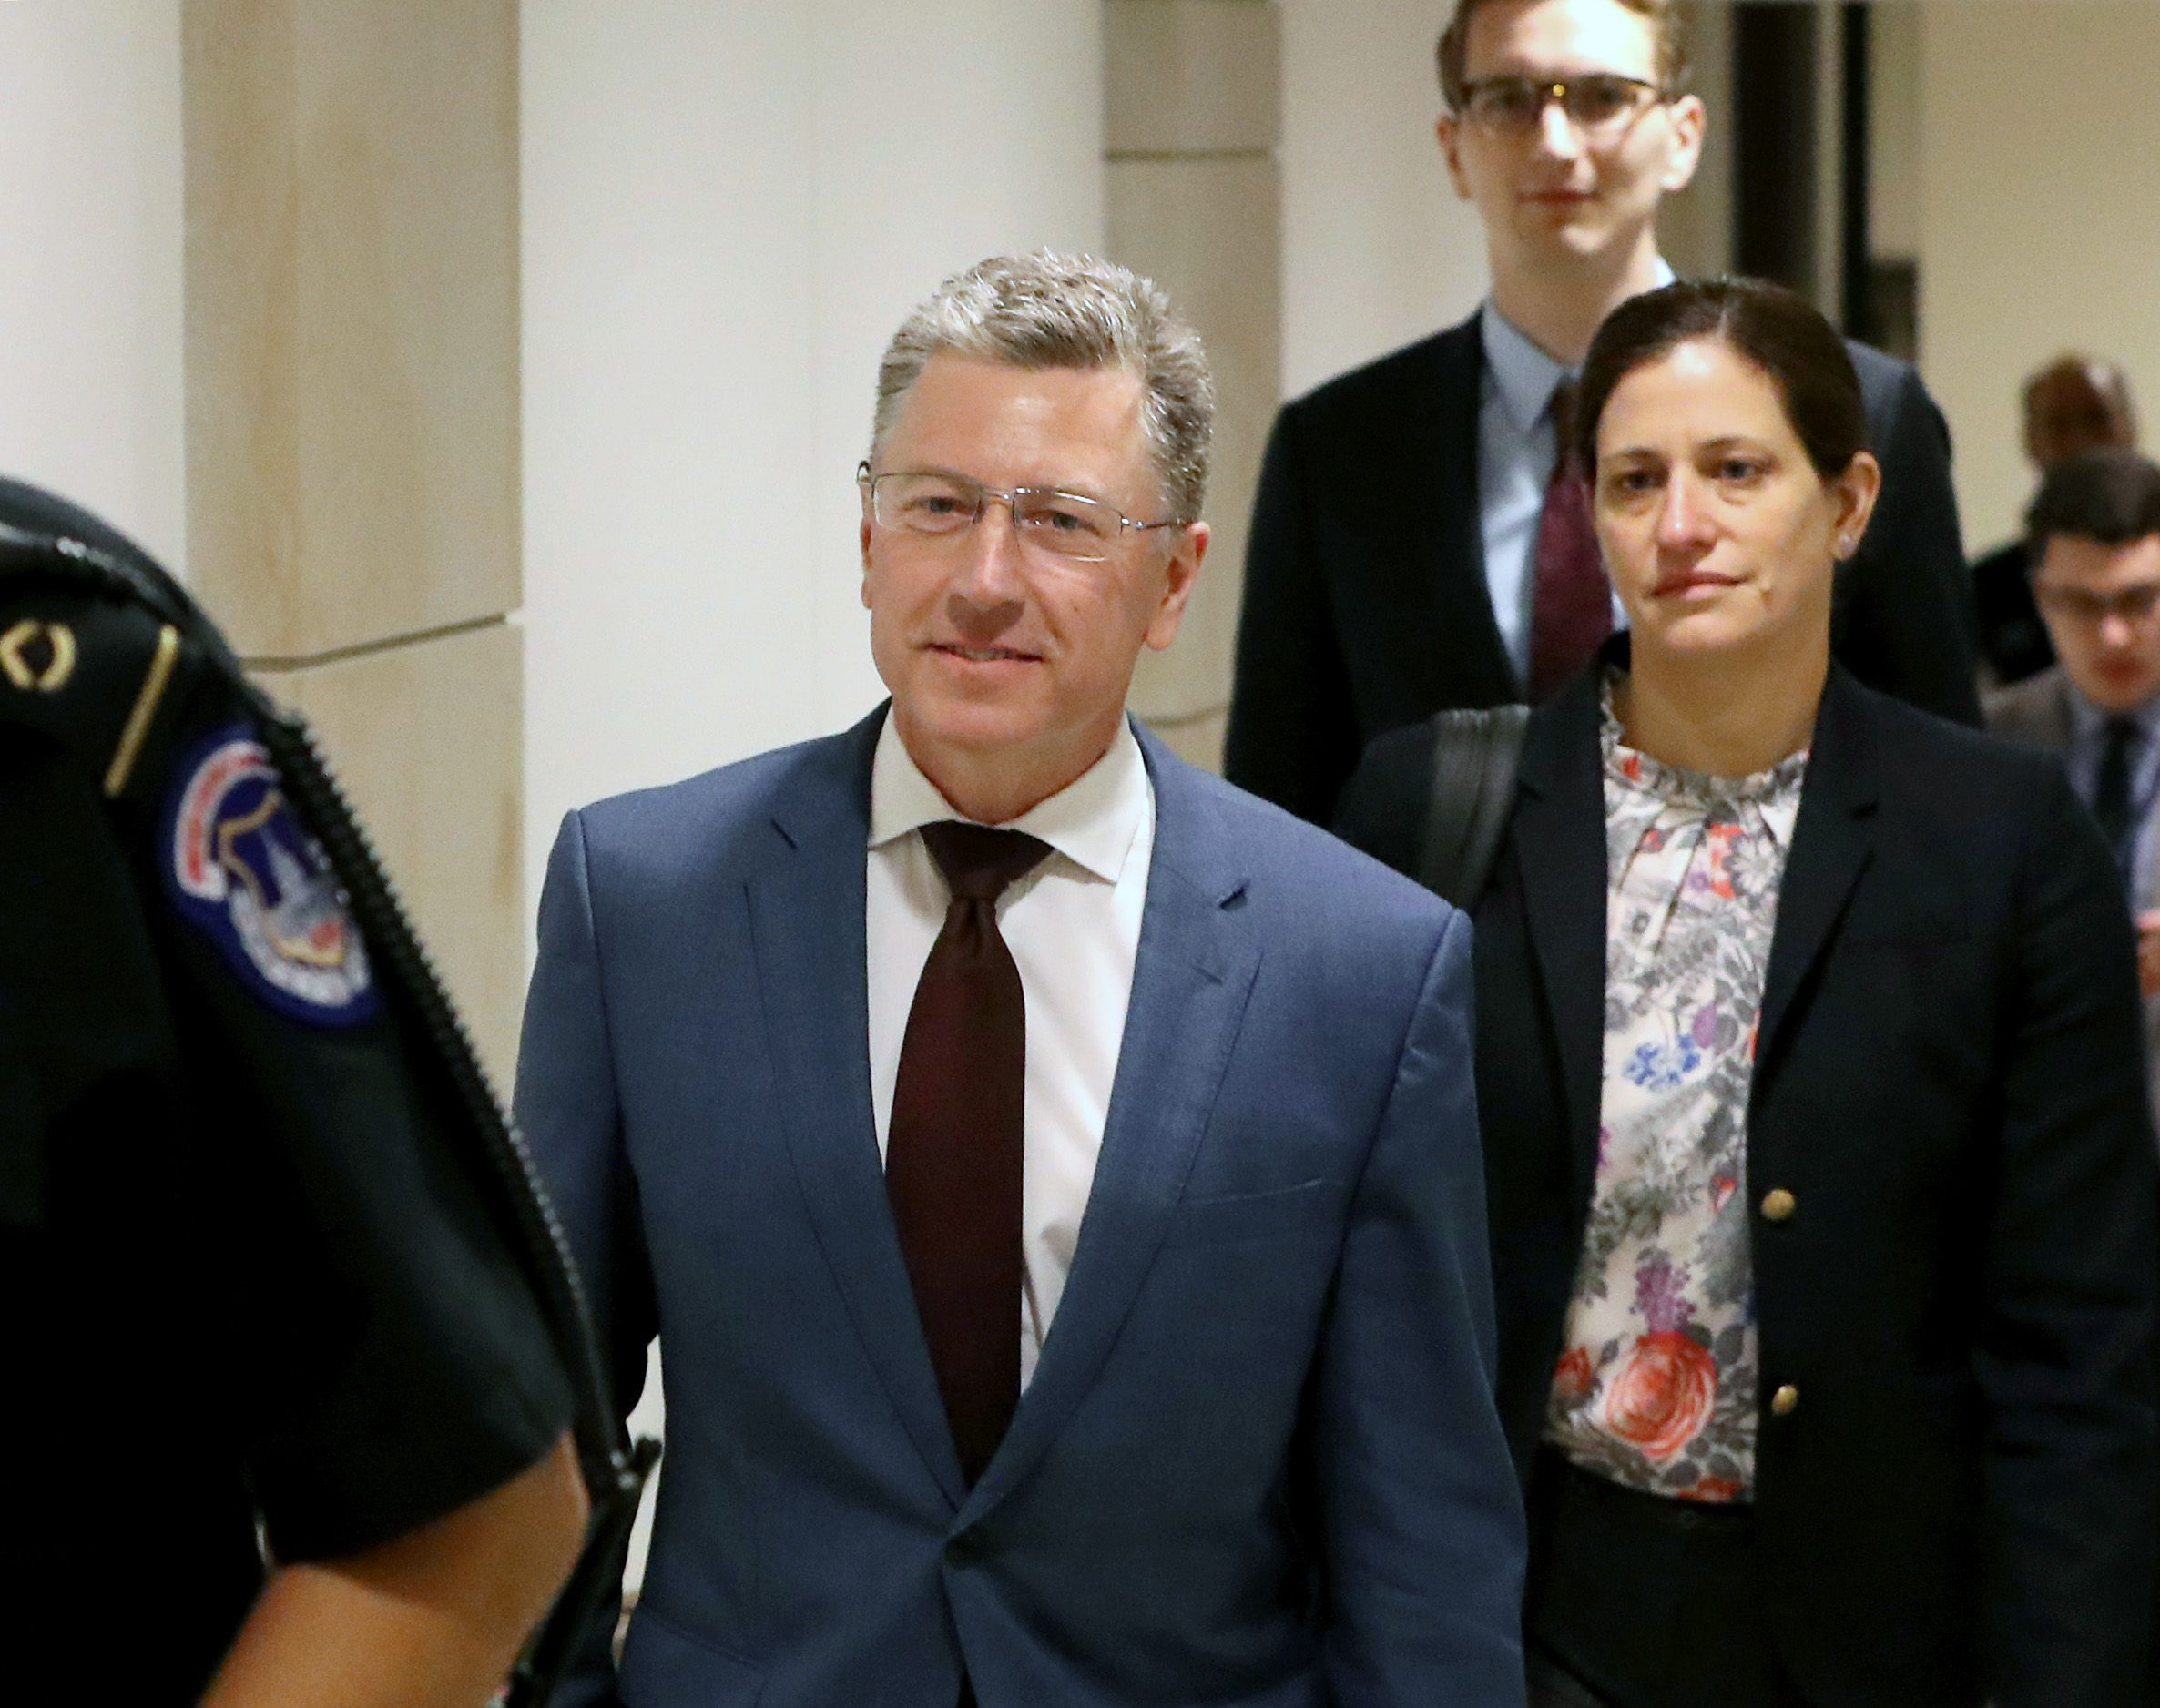 Kurt Volker testimony revealed depth of concerns about Giuliani